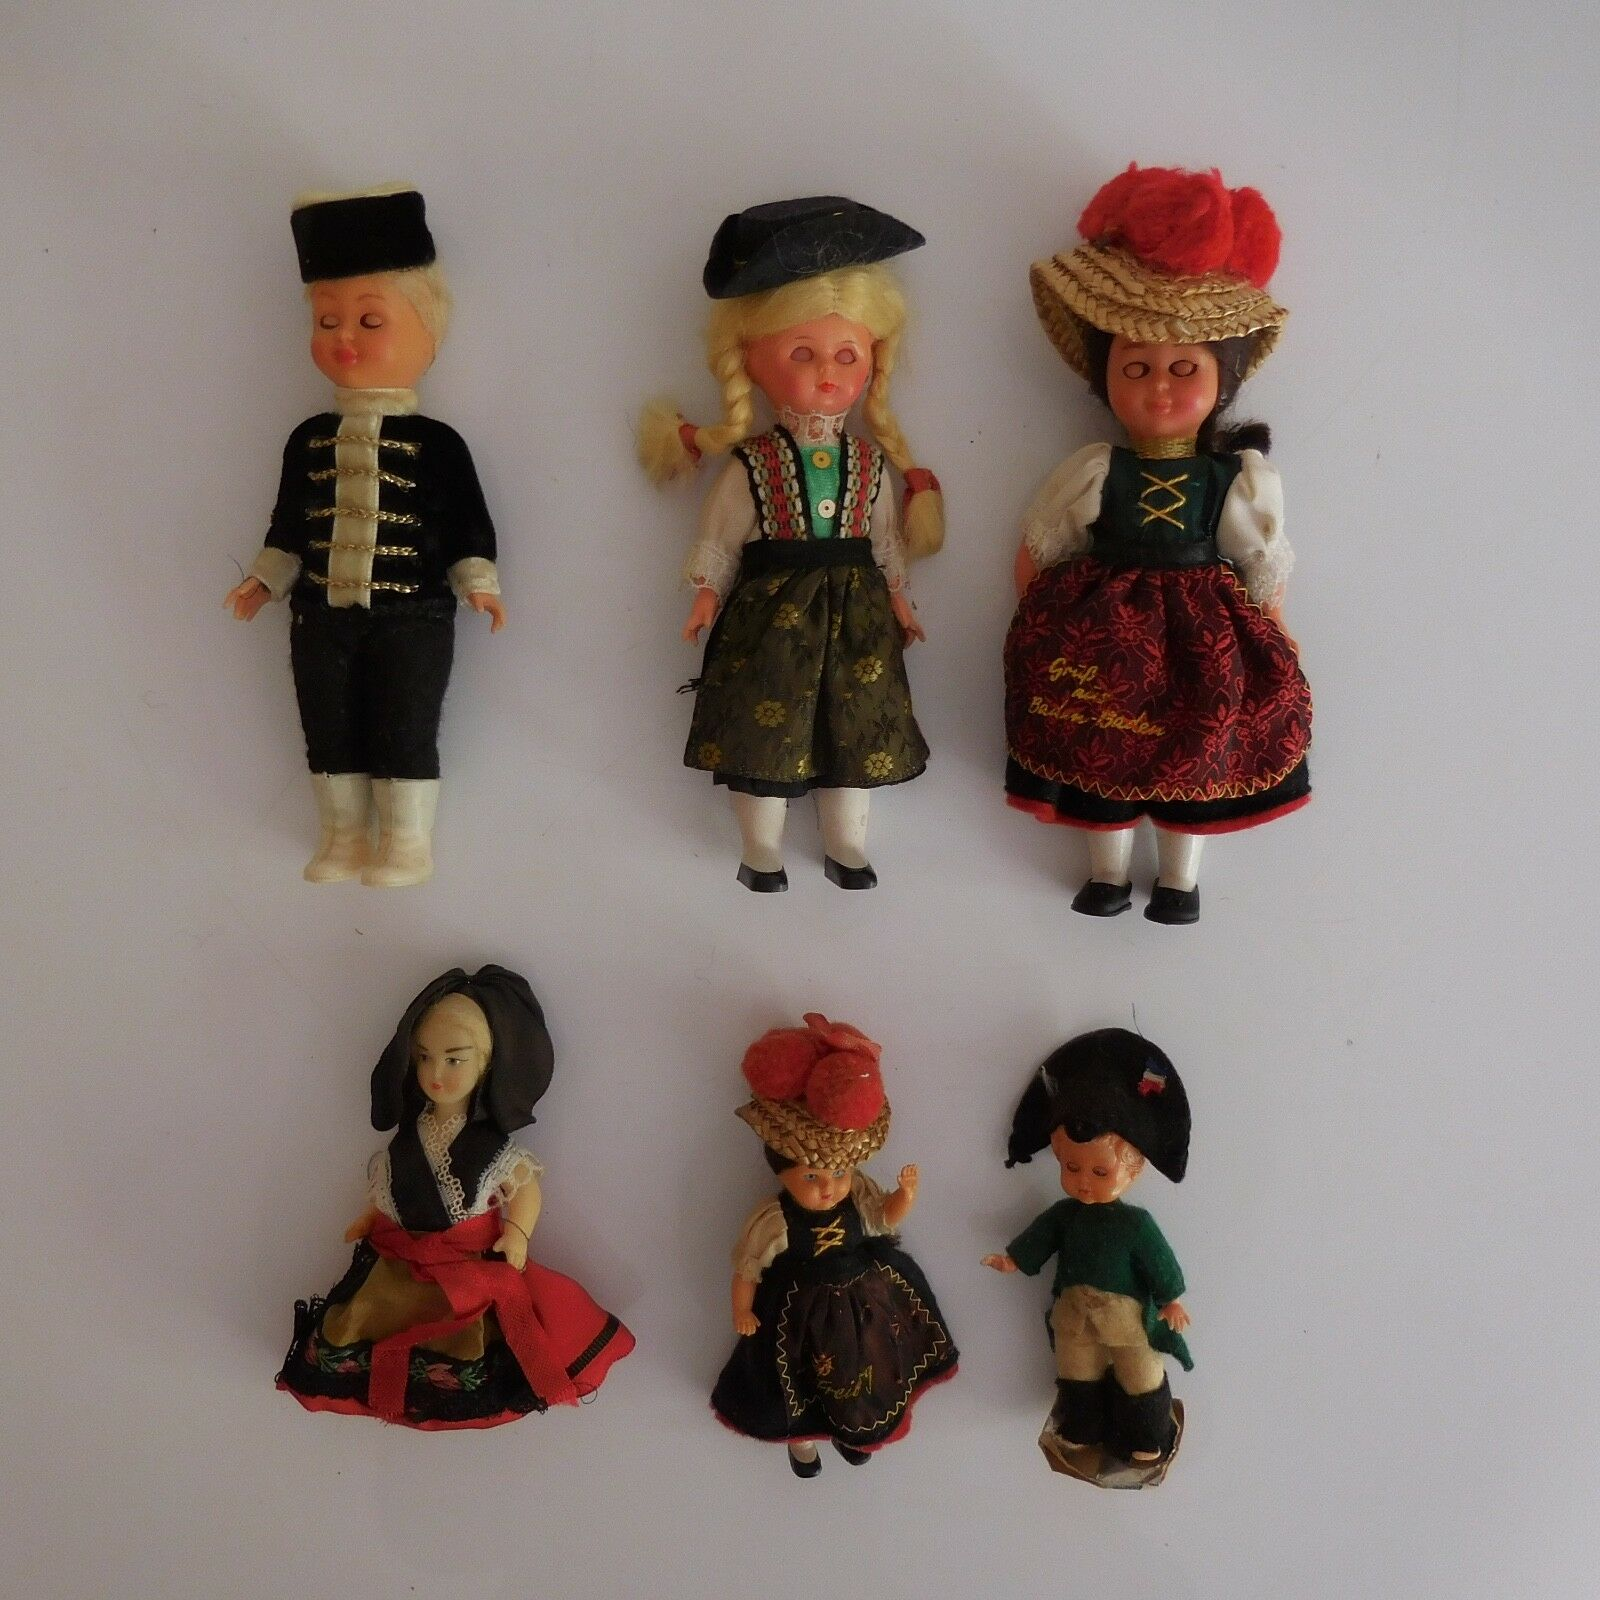 6 poupées personnages collection tradition tradition tradition folklore fait main XXe PN France 1601ff